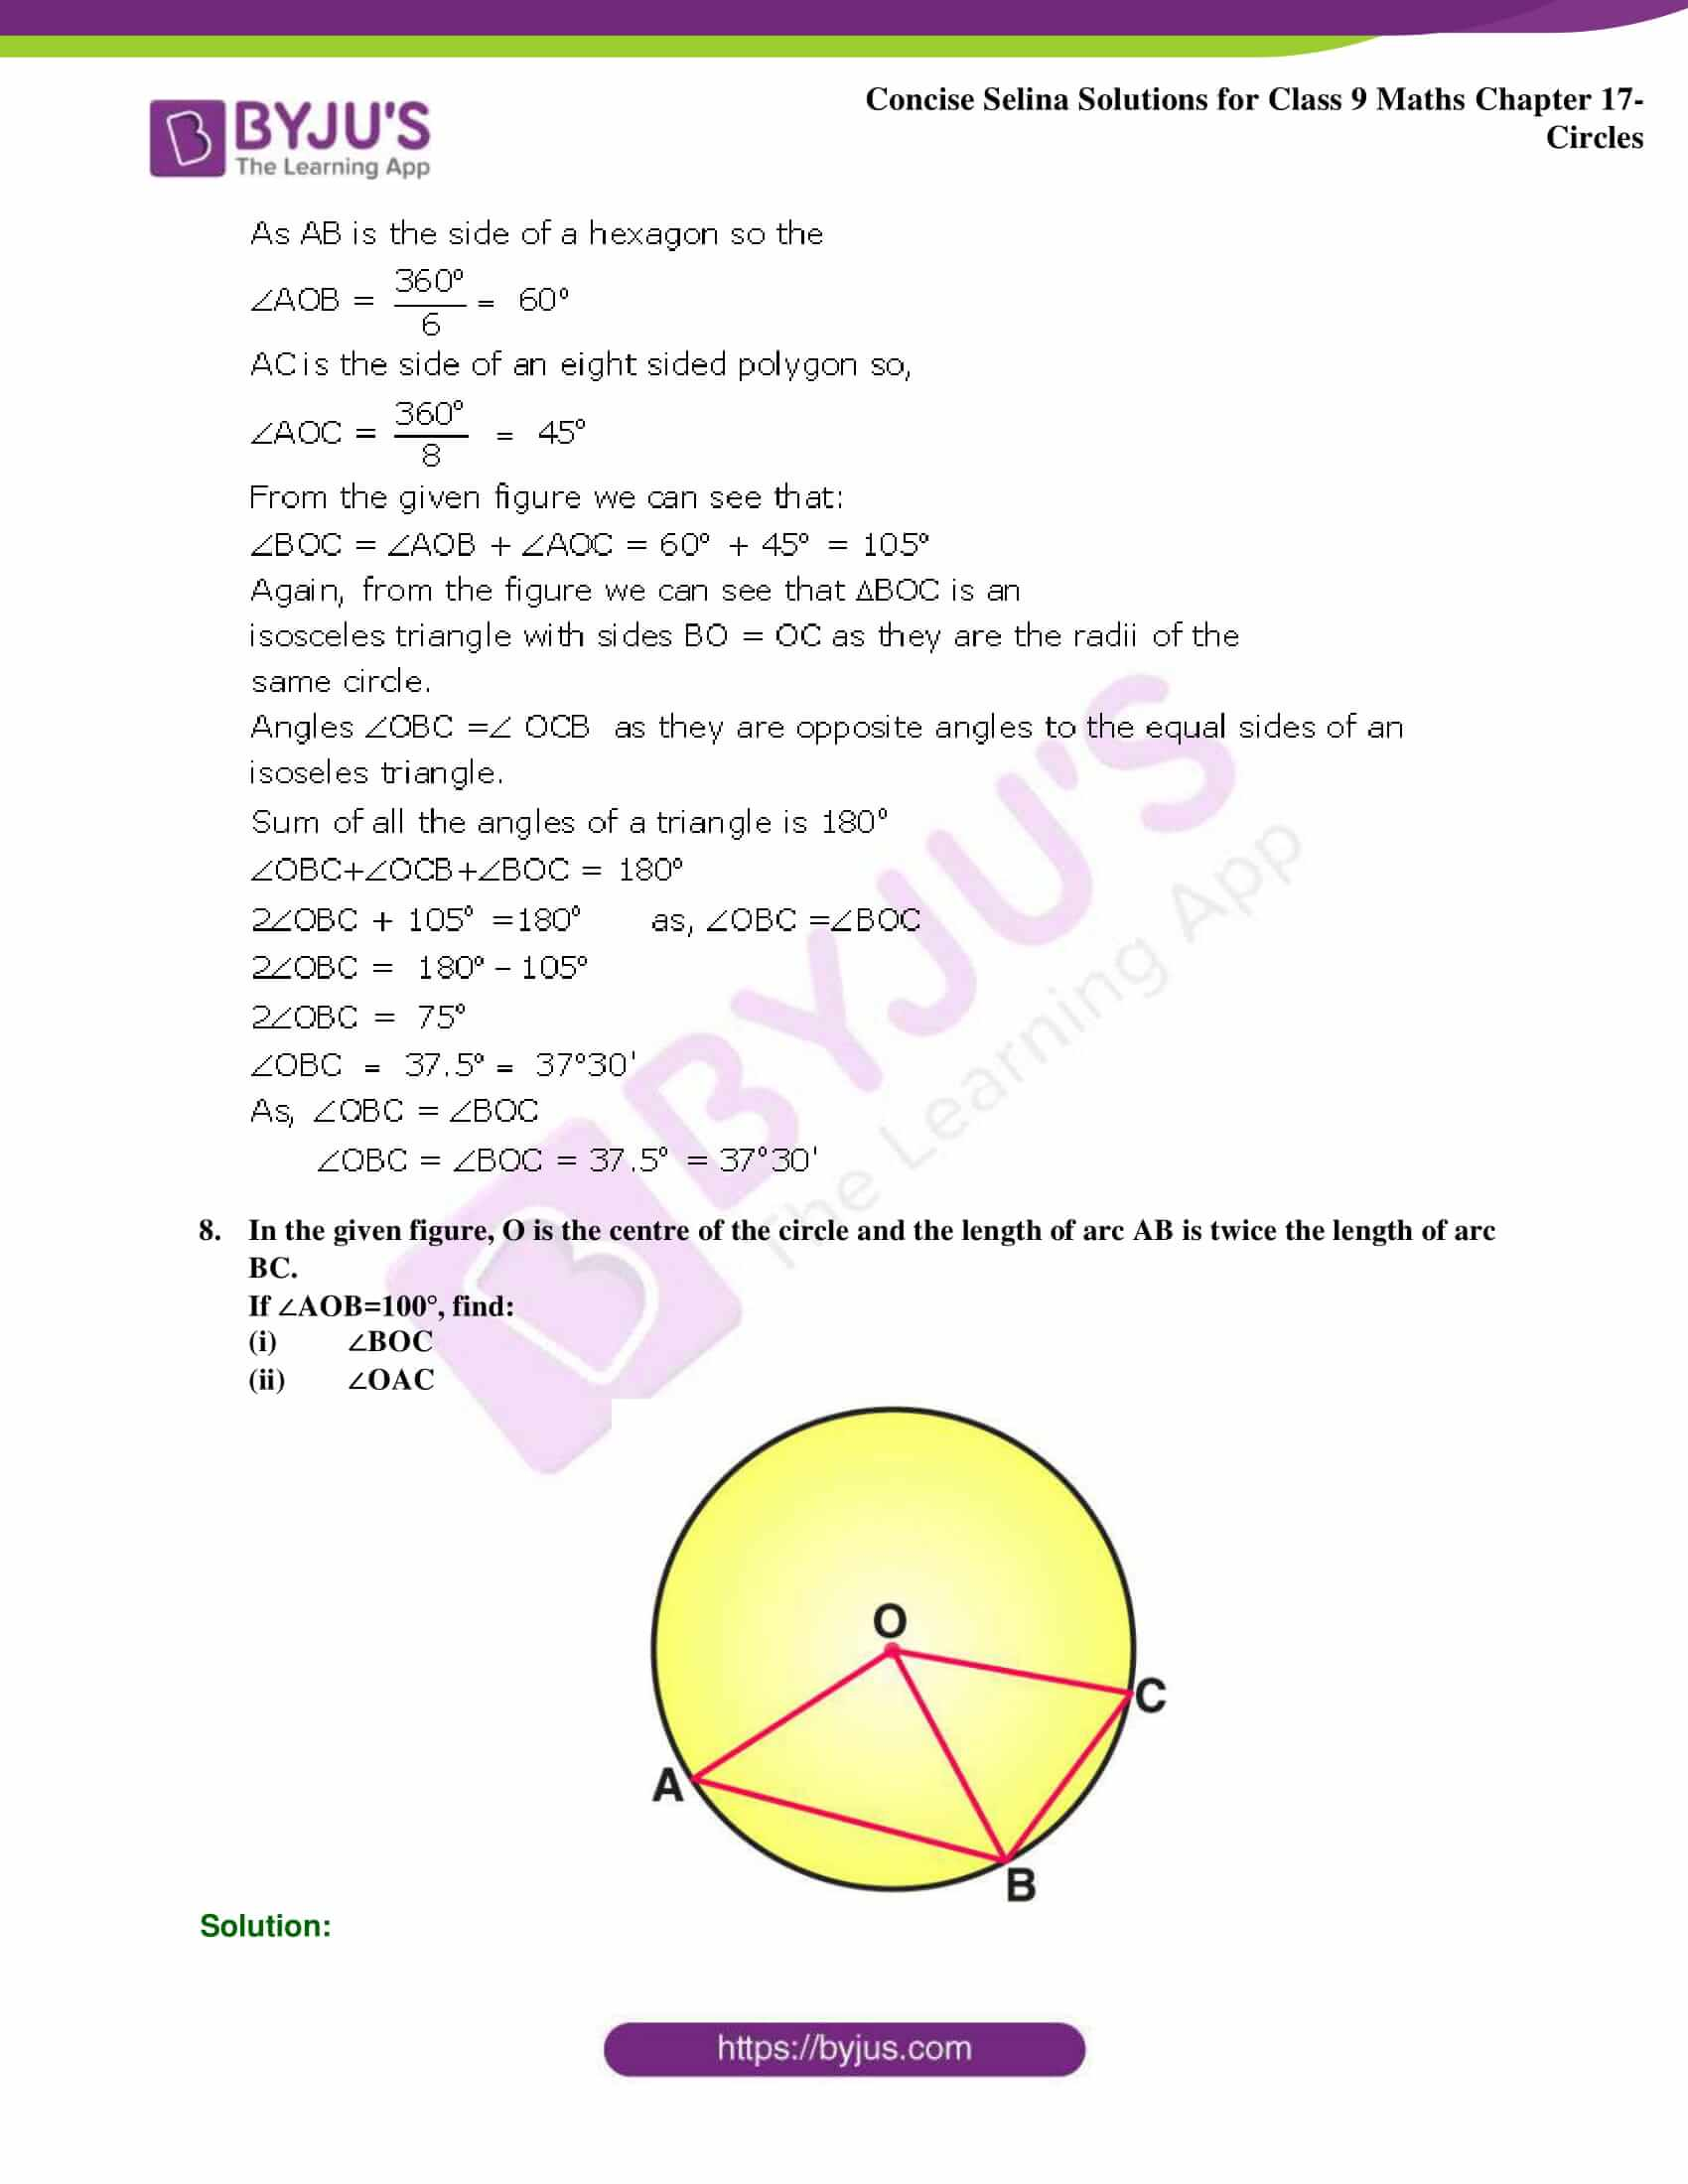 Concise Selina Solutions Class 9 Maths Chapter 17 Circles part 27